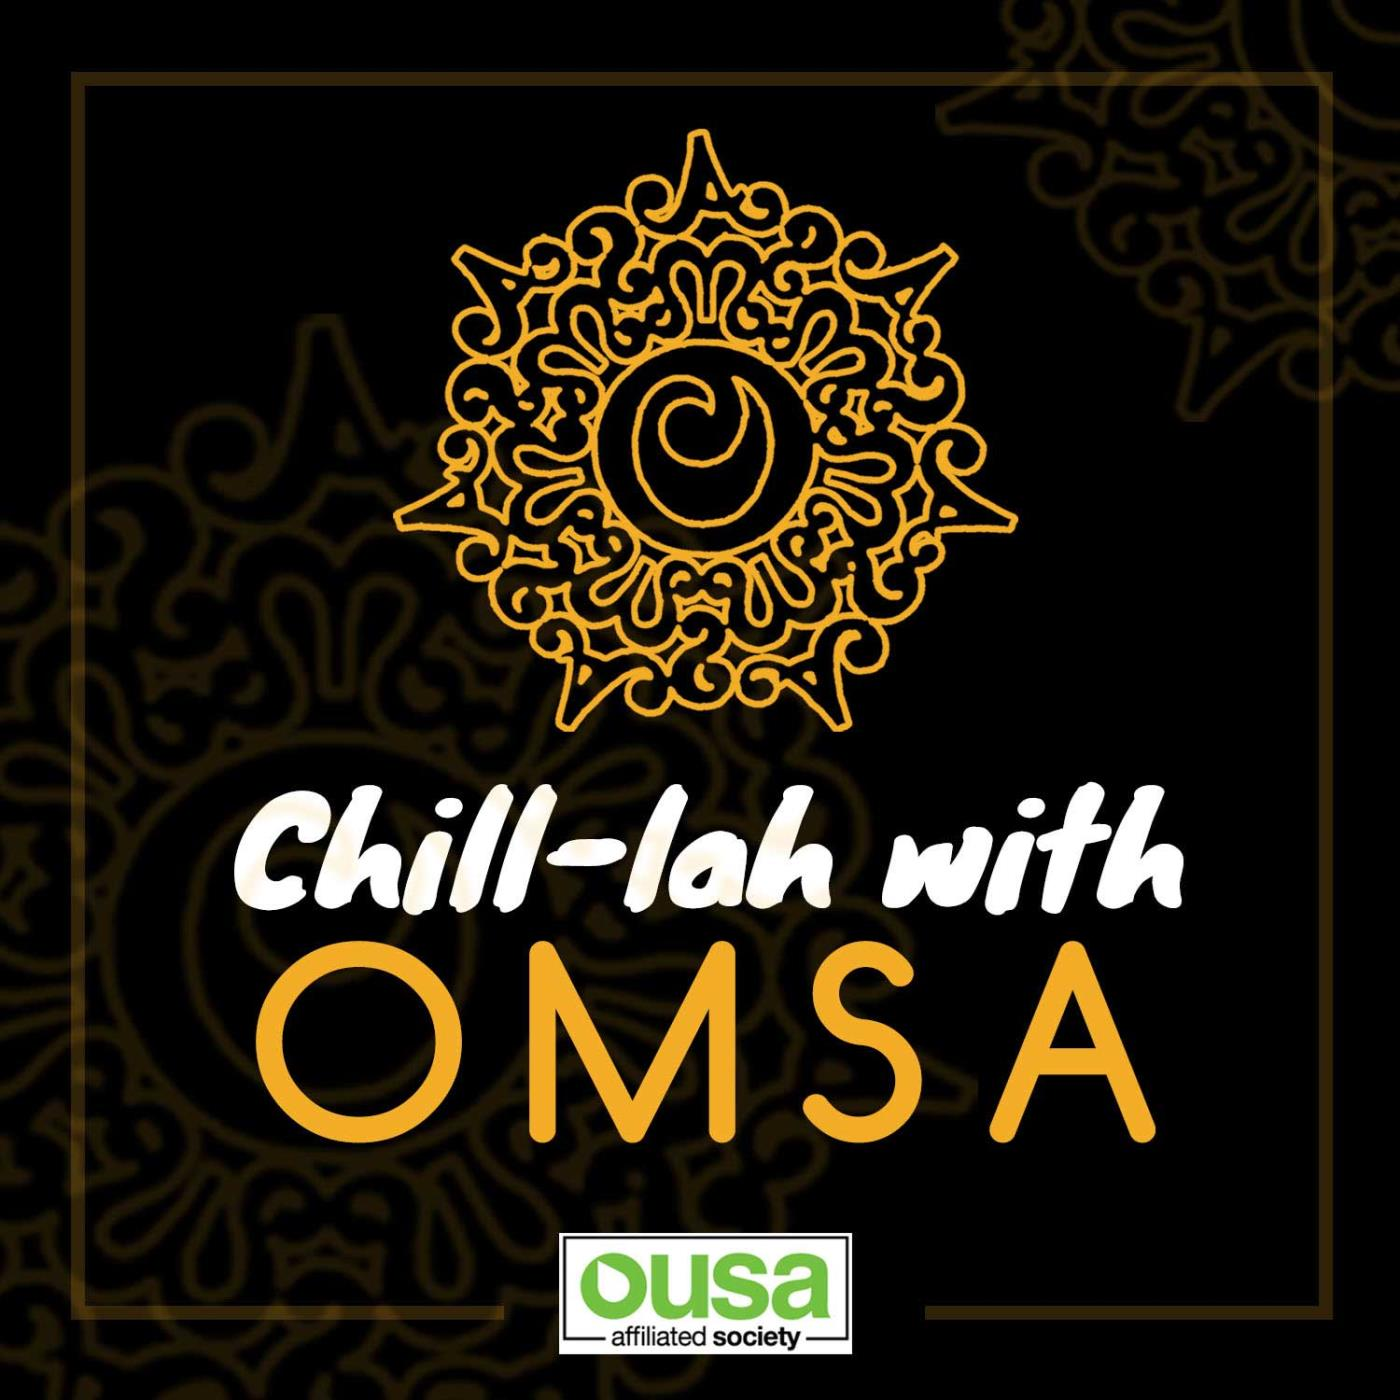 Chill-lah with OMSA - 04-05-2021 - Aren't You Hungry